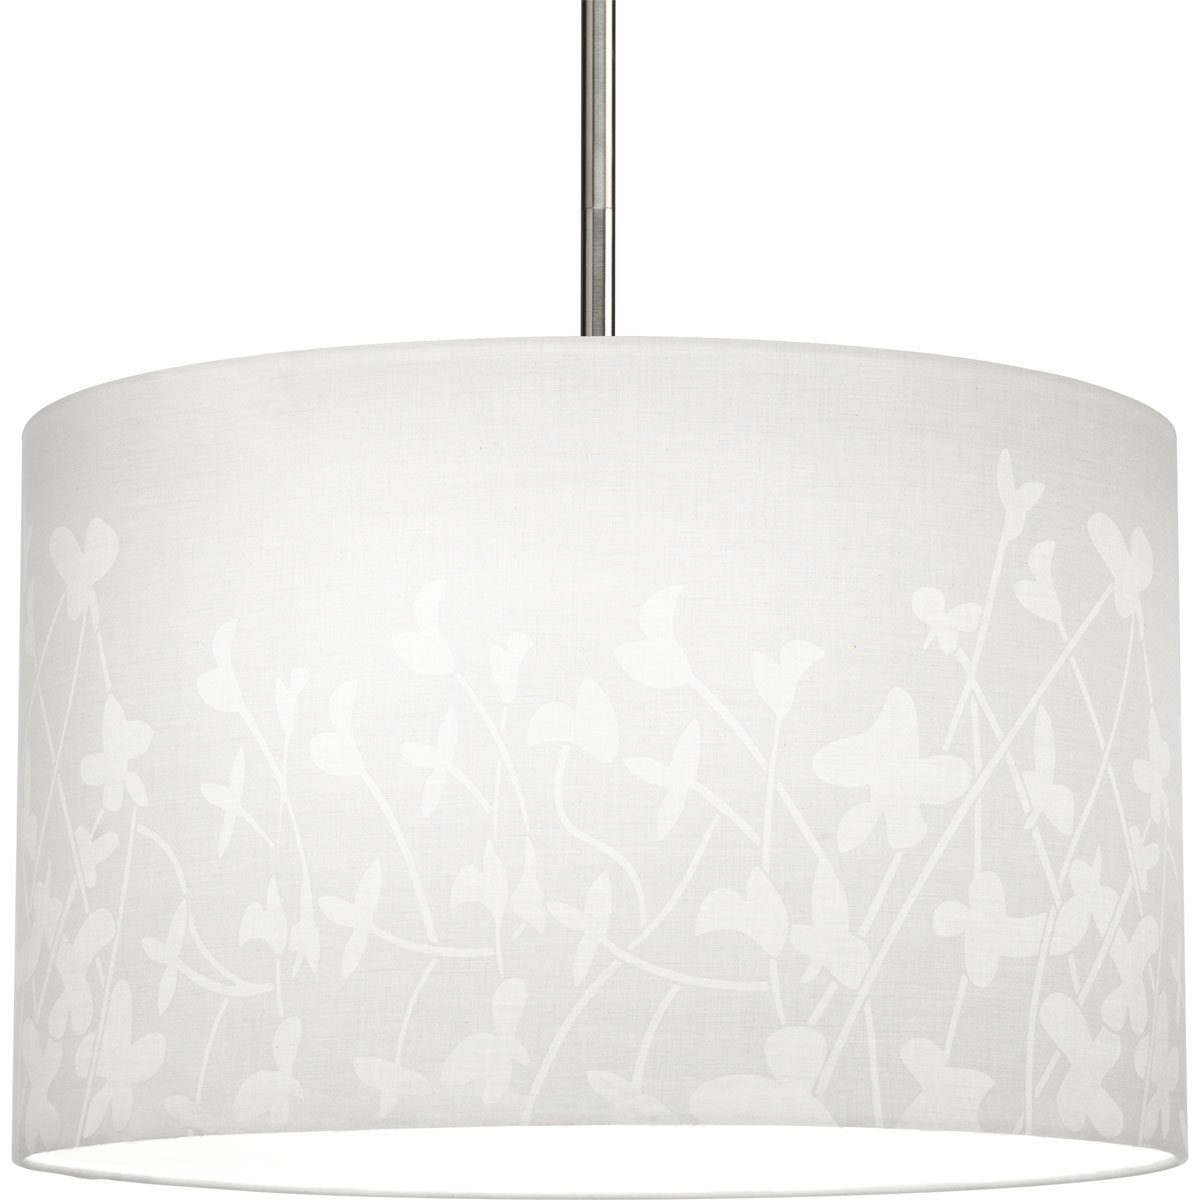 Progress Lighting P8766-01 Modular Pendant System Choose Shade and 1-Light Stem (P5198) Or 3-Light Stem (P5199) To Make Complete Fixture 16-Inch Floral Fabric Shade, Floral Fabric